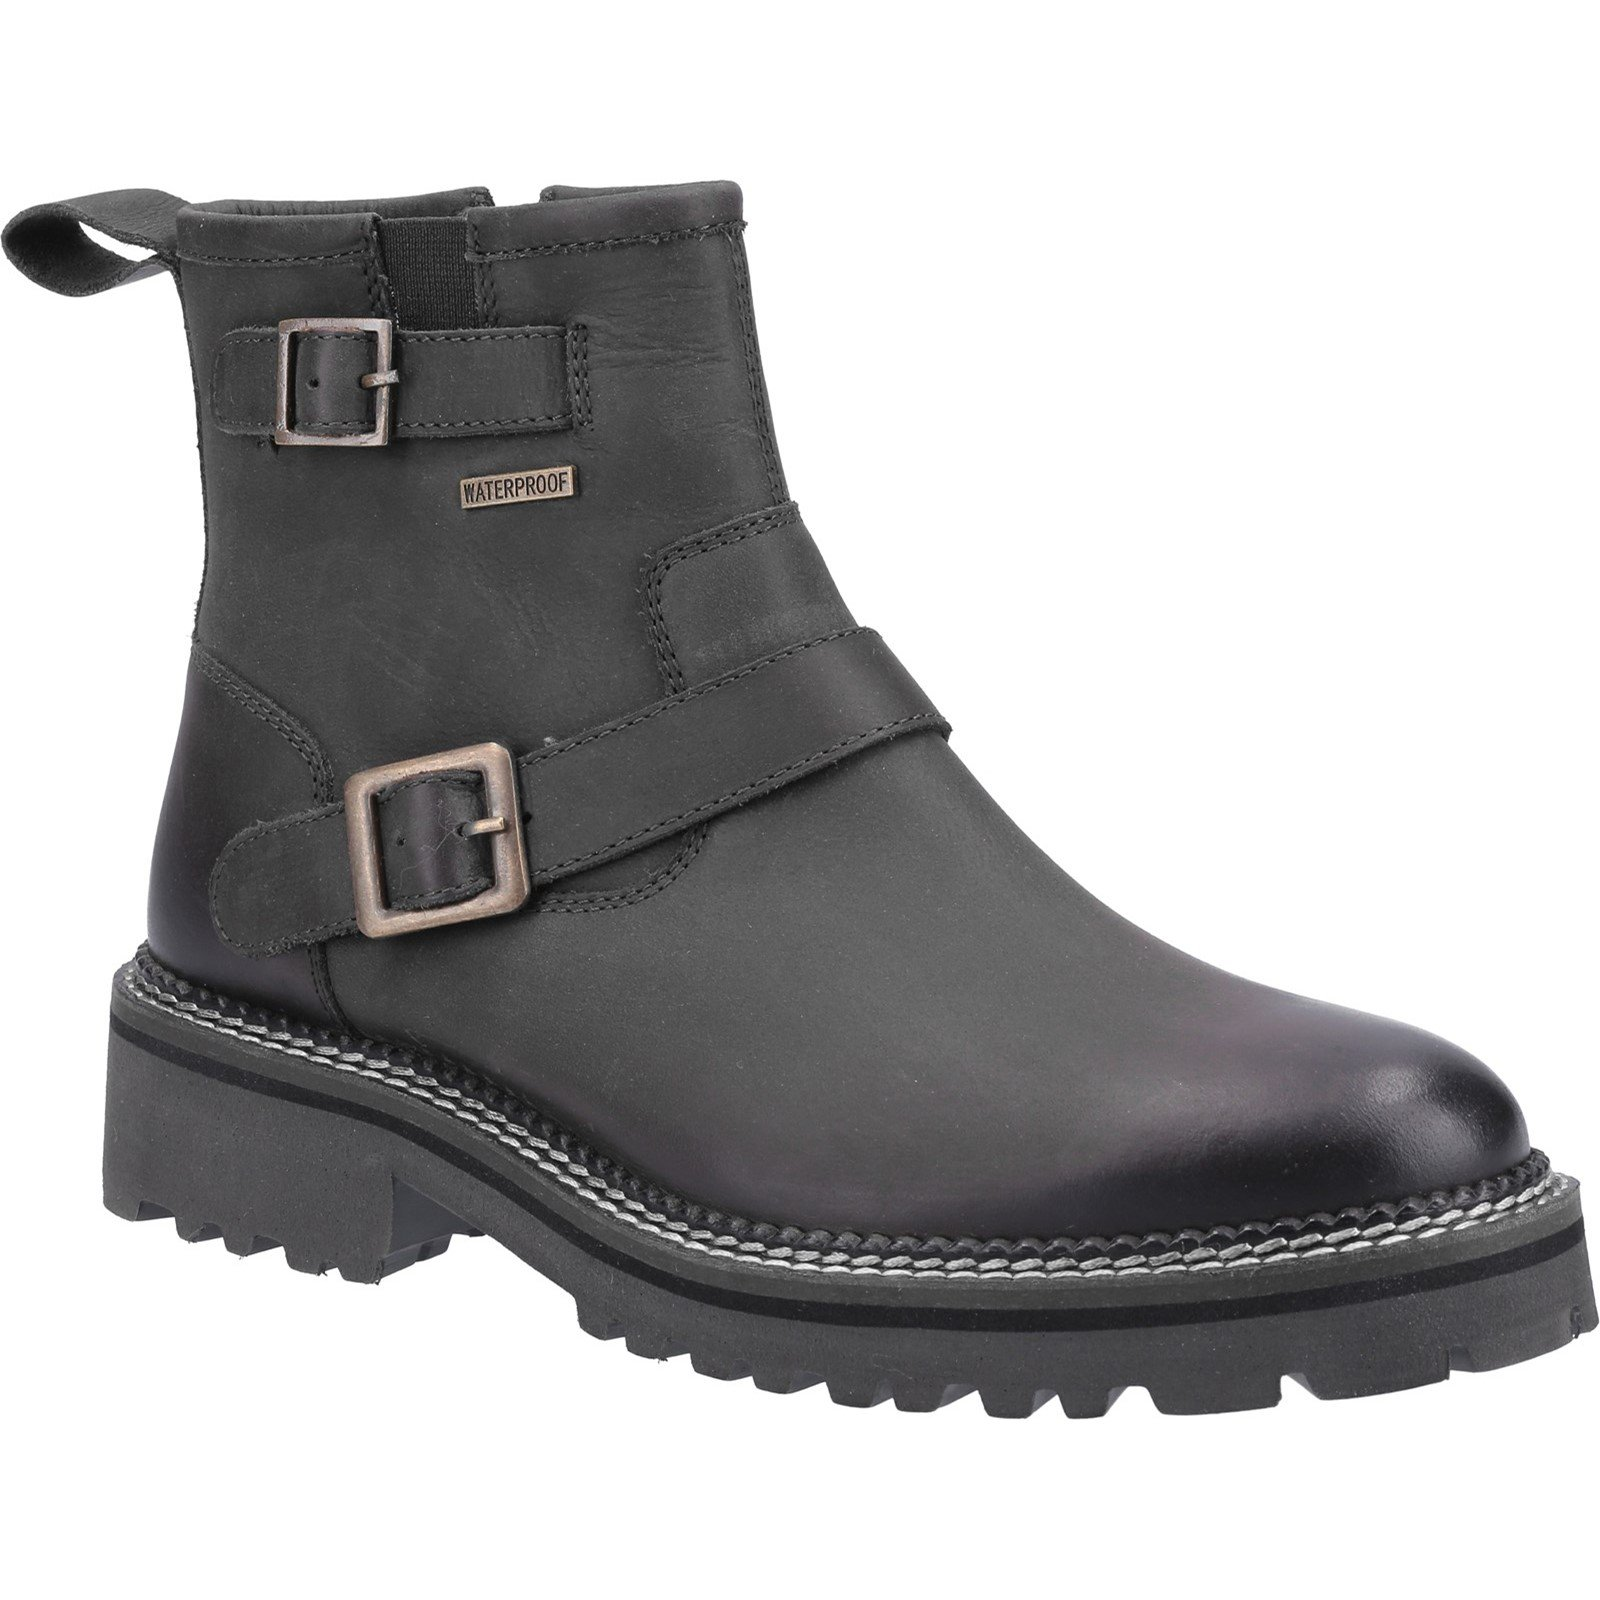 Cotswold Women's Combe Zip Ankle Boot Black 32975 - Black 4